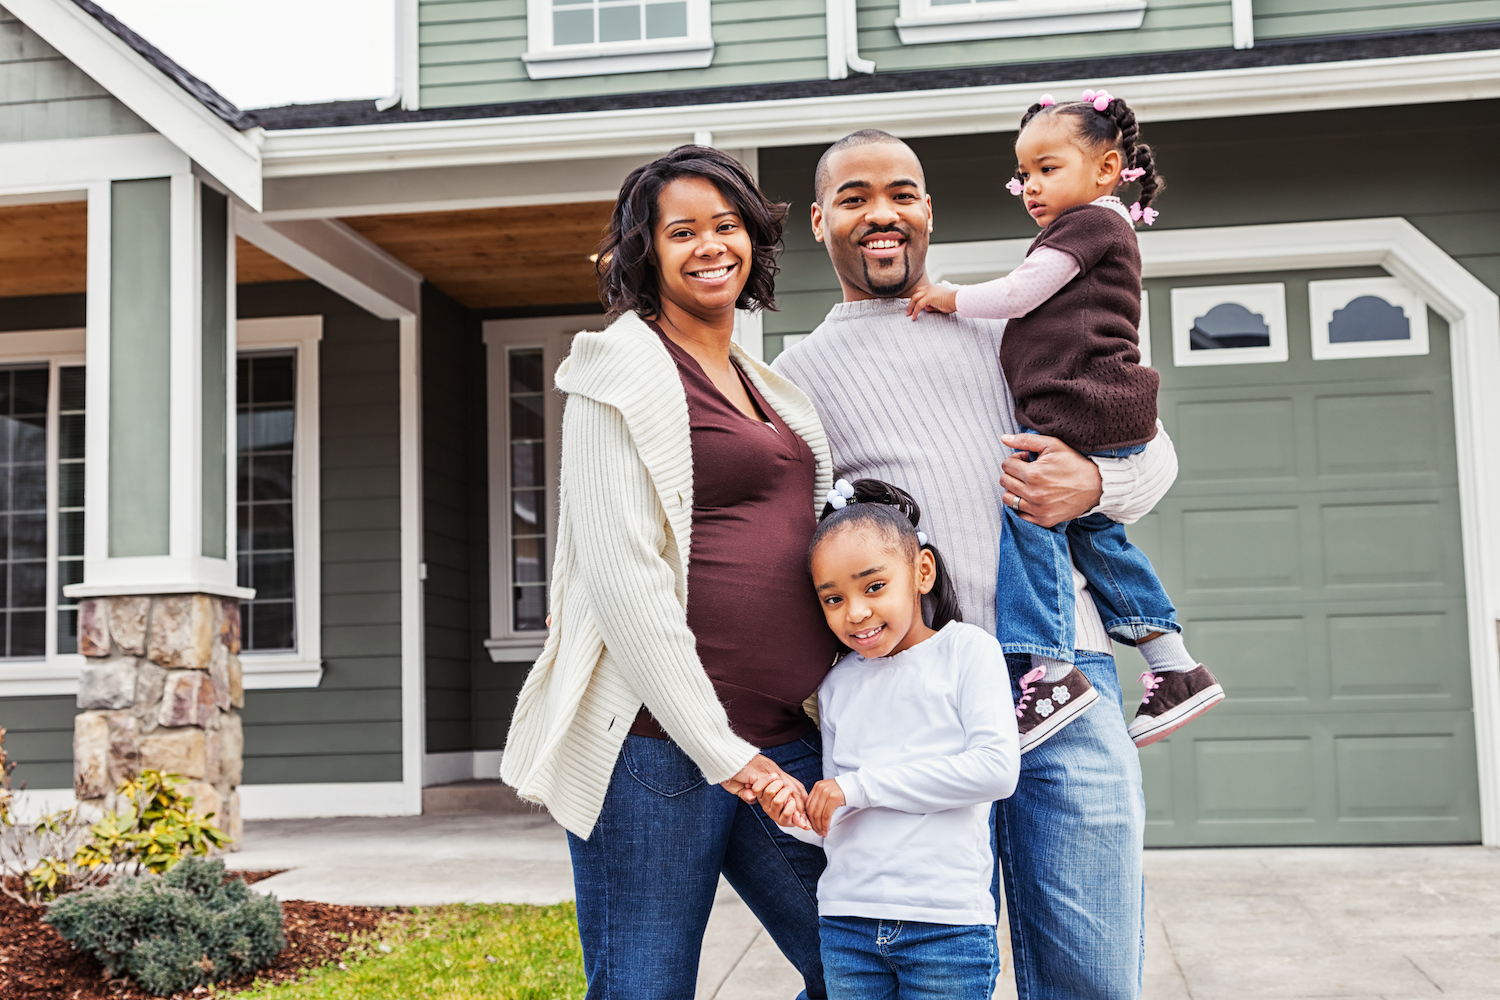 Portrait of a young African American family of four in front of their house.